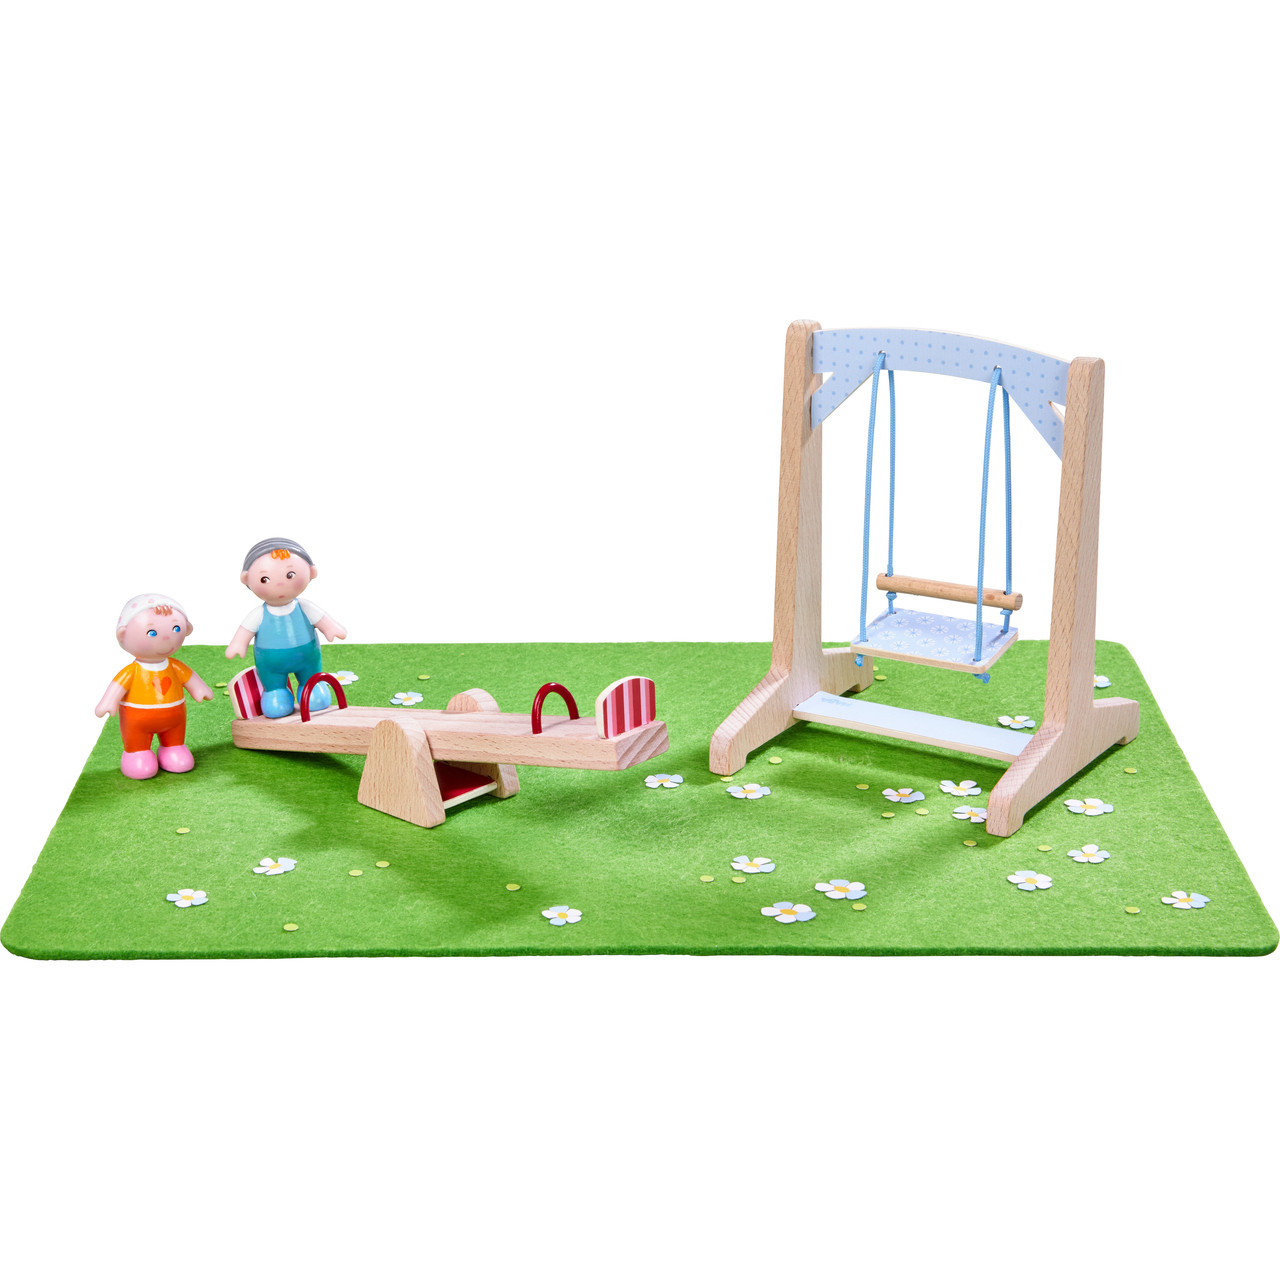 Open-Ended Module System Play Kit Fun and Creative Educational Play Kit PLAY31 STORii Builder Adventure kit Basic Chapter 2 Ocean Friends Green Sustainable Play Paper Doll